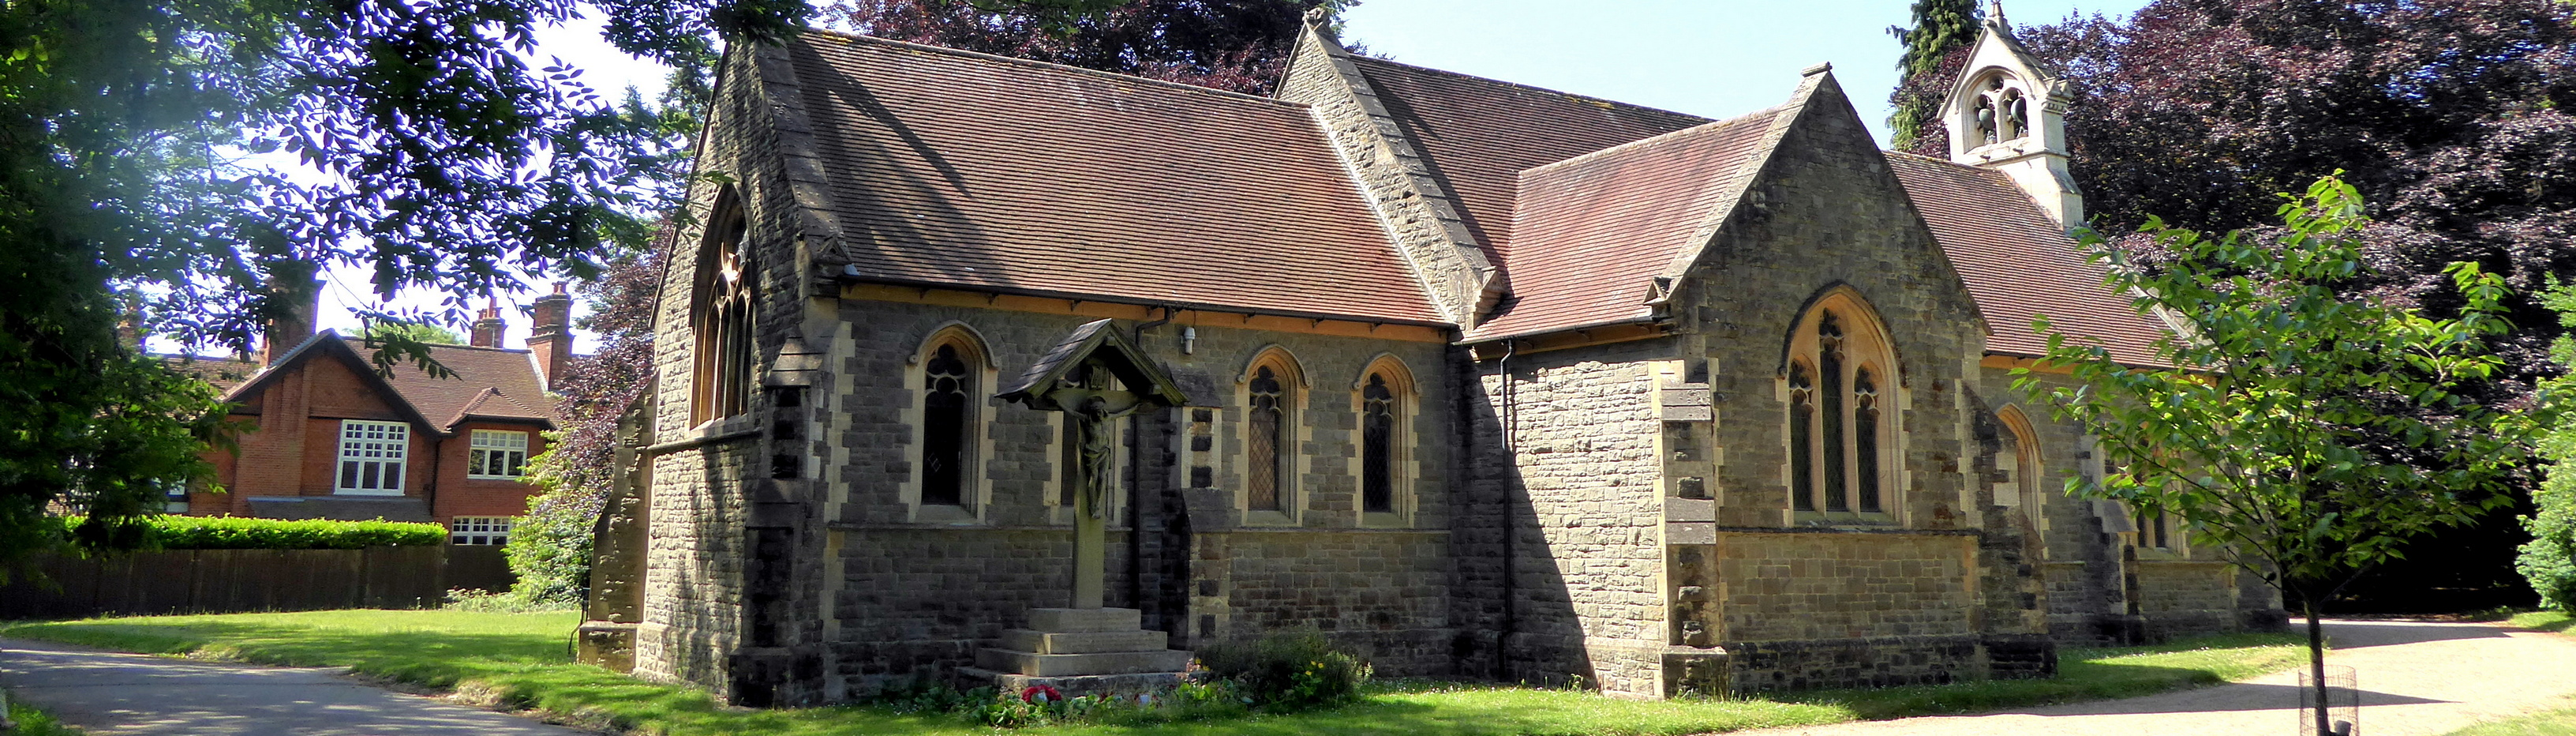 St John the Evangelist, Littlewick Green